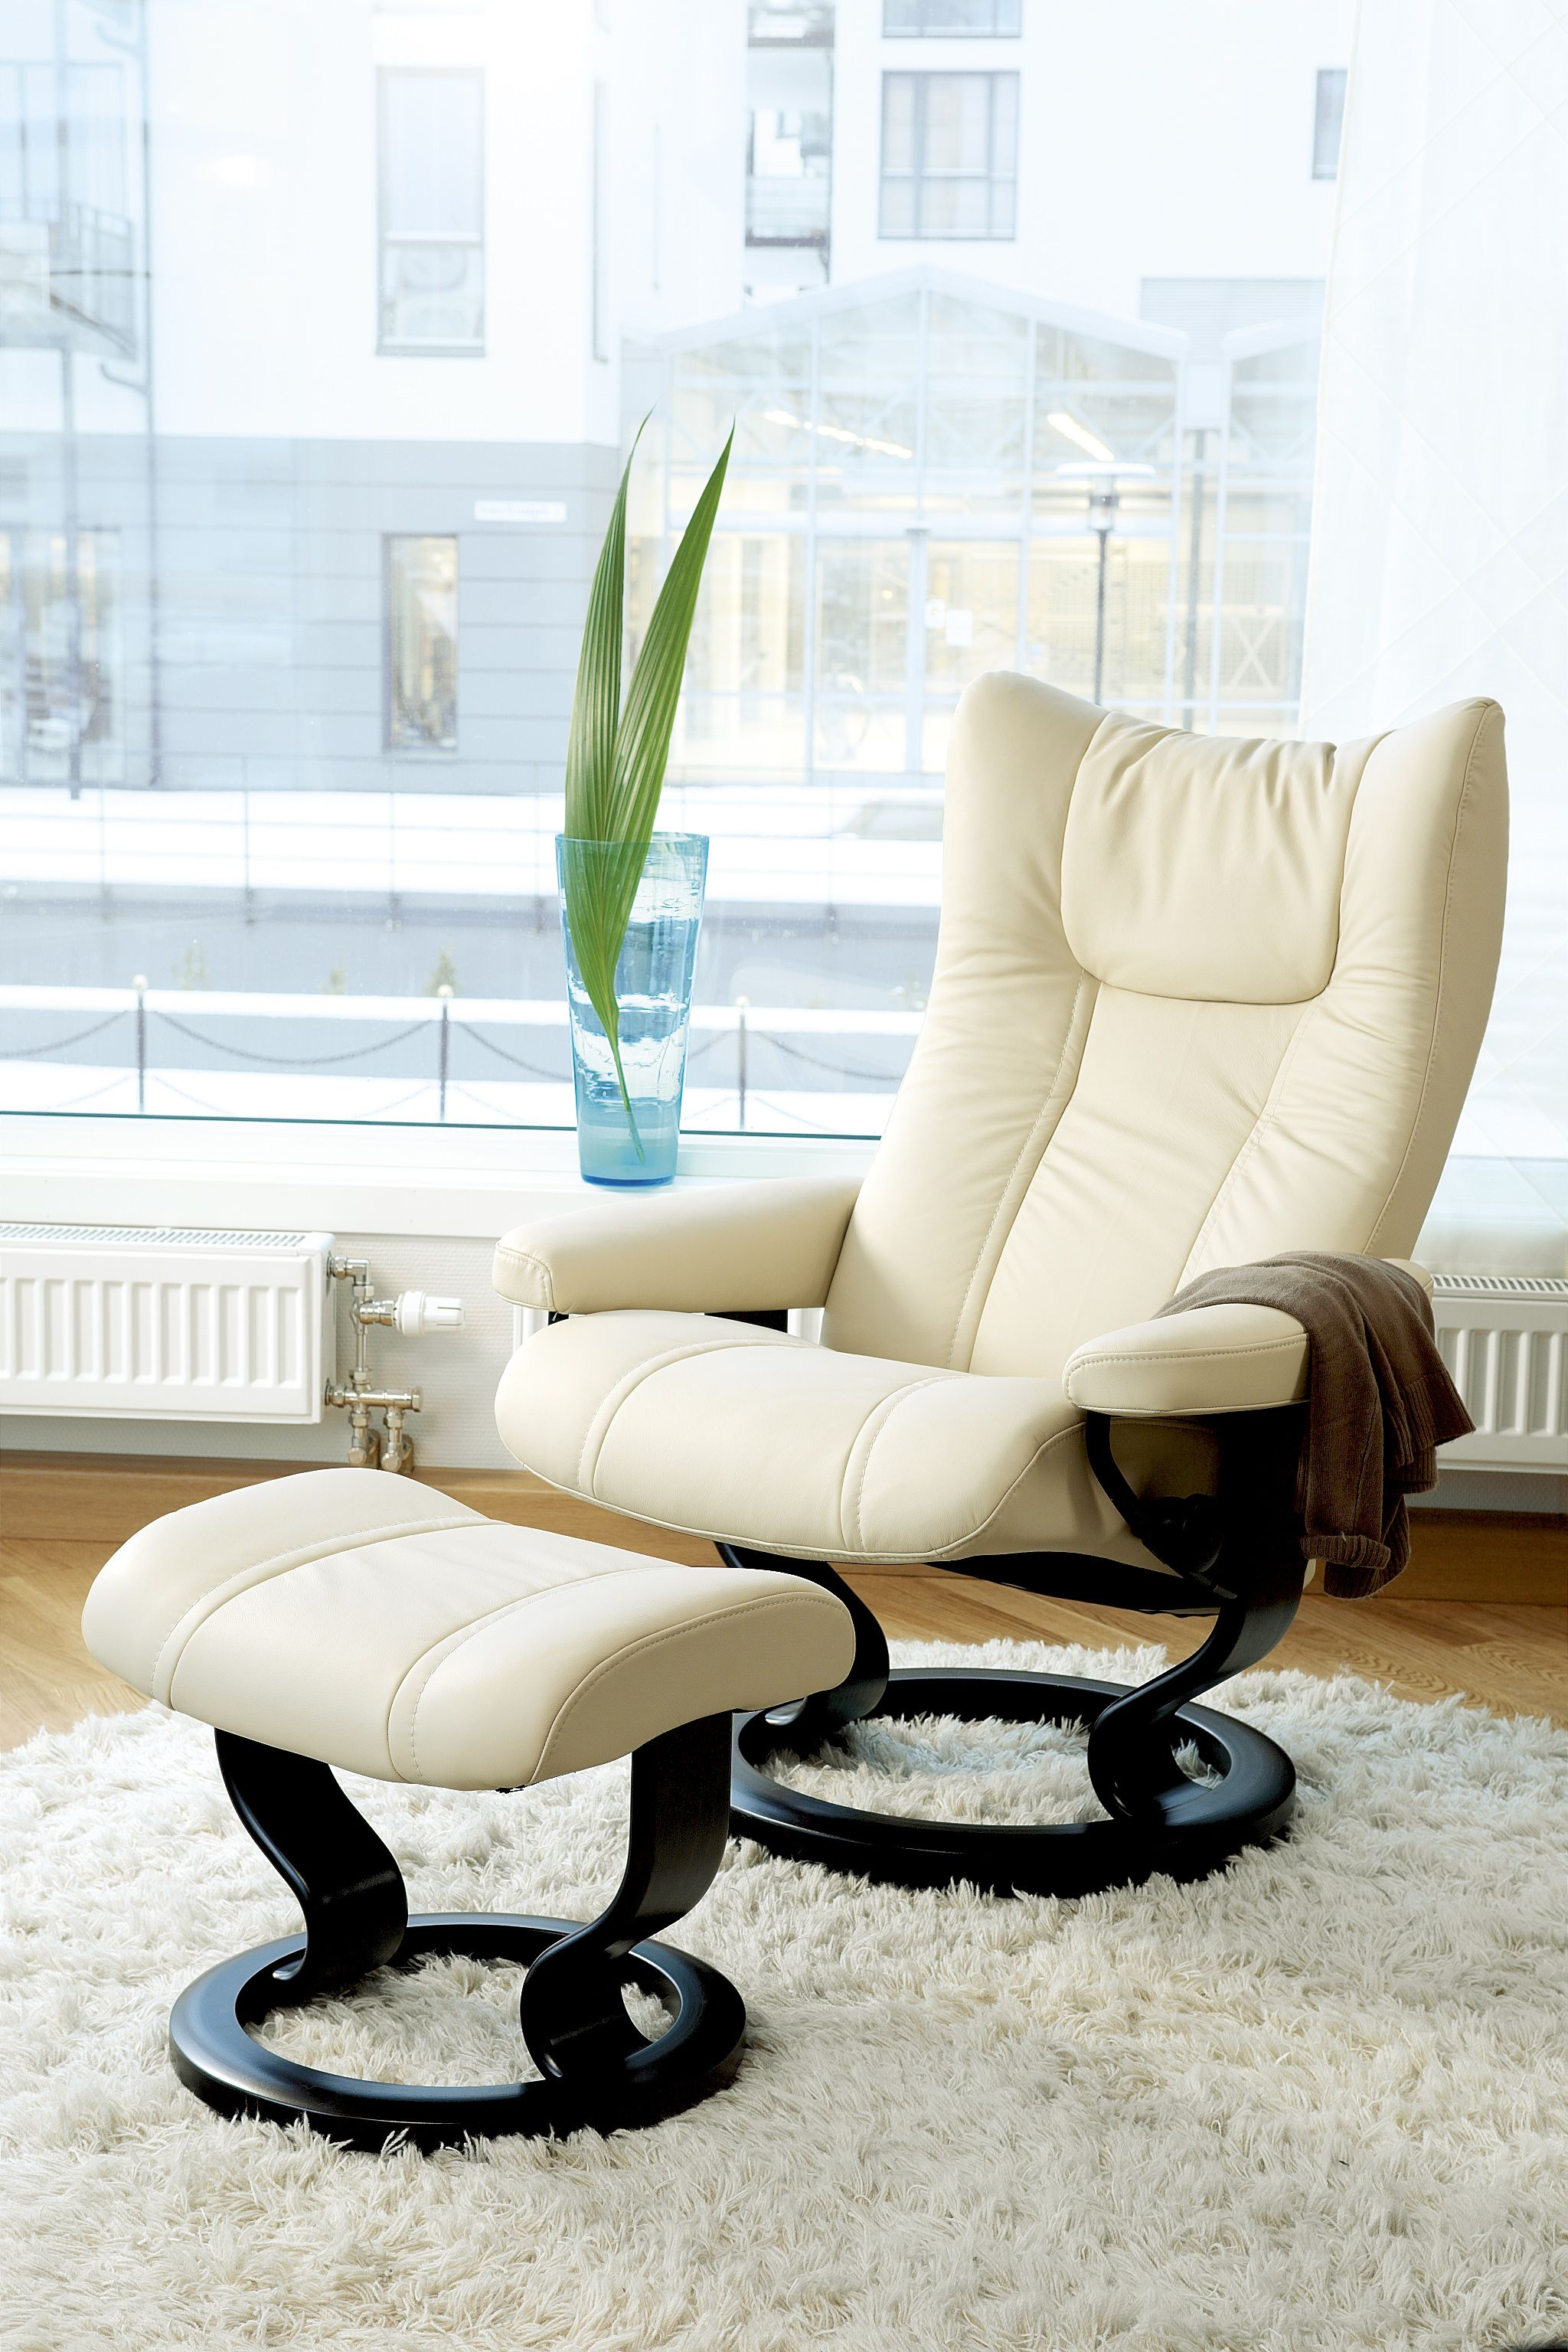 A Stylish Cream Recliner And Ottoman Perfect For The Modern Pertaining To Katrina Beige Swivel Glider Chairs (View 18 of 25)